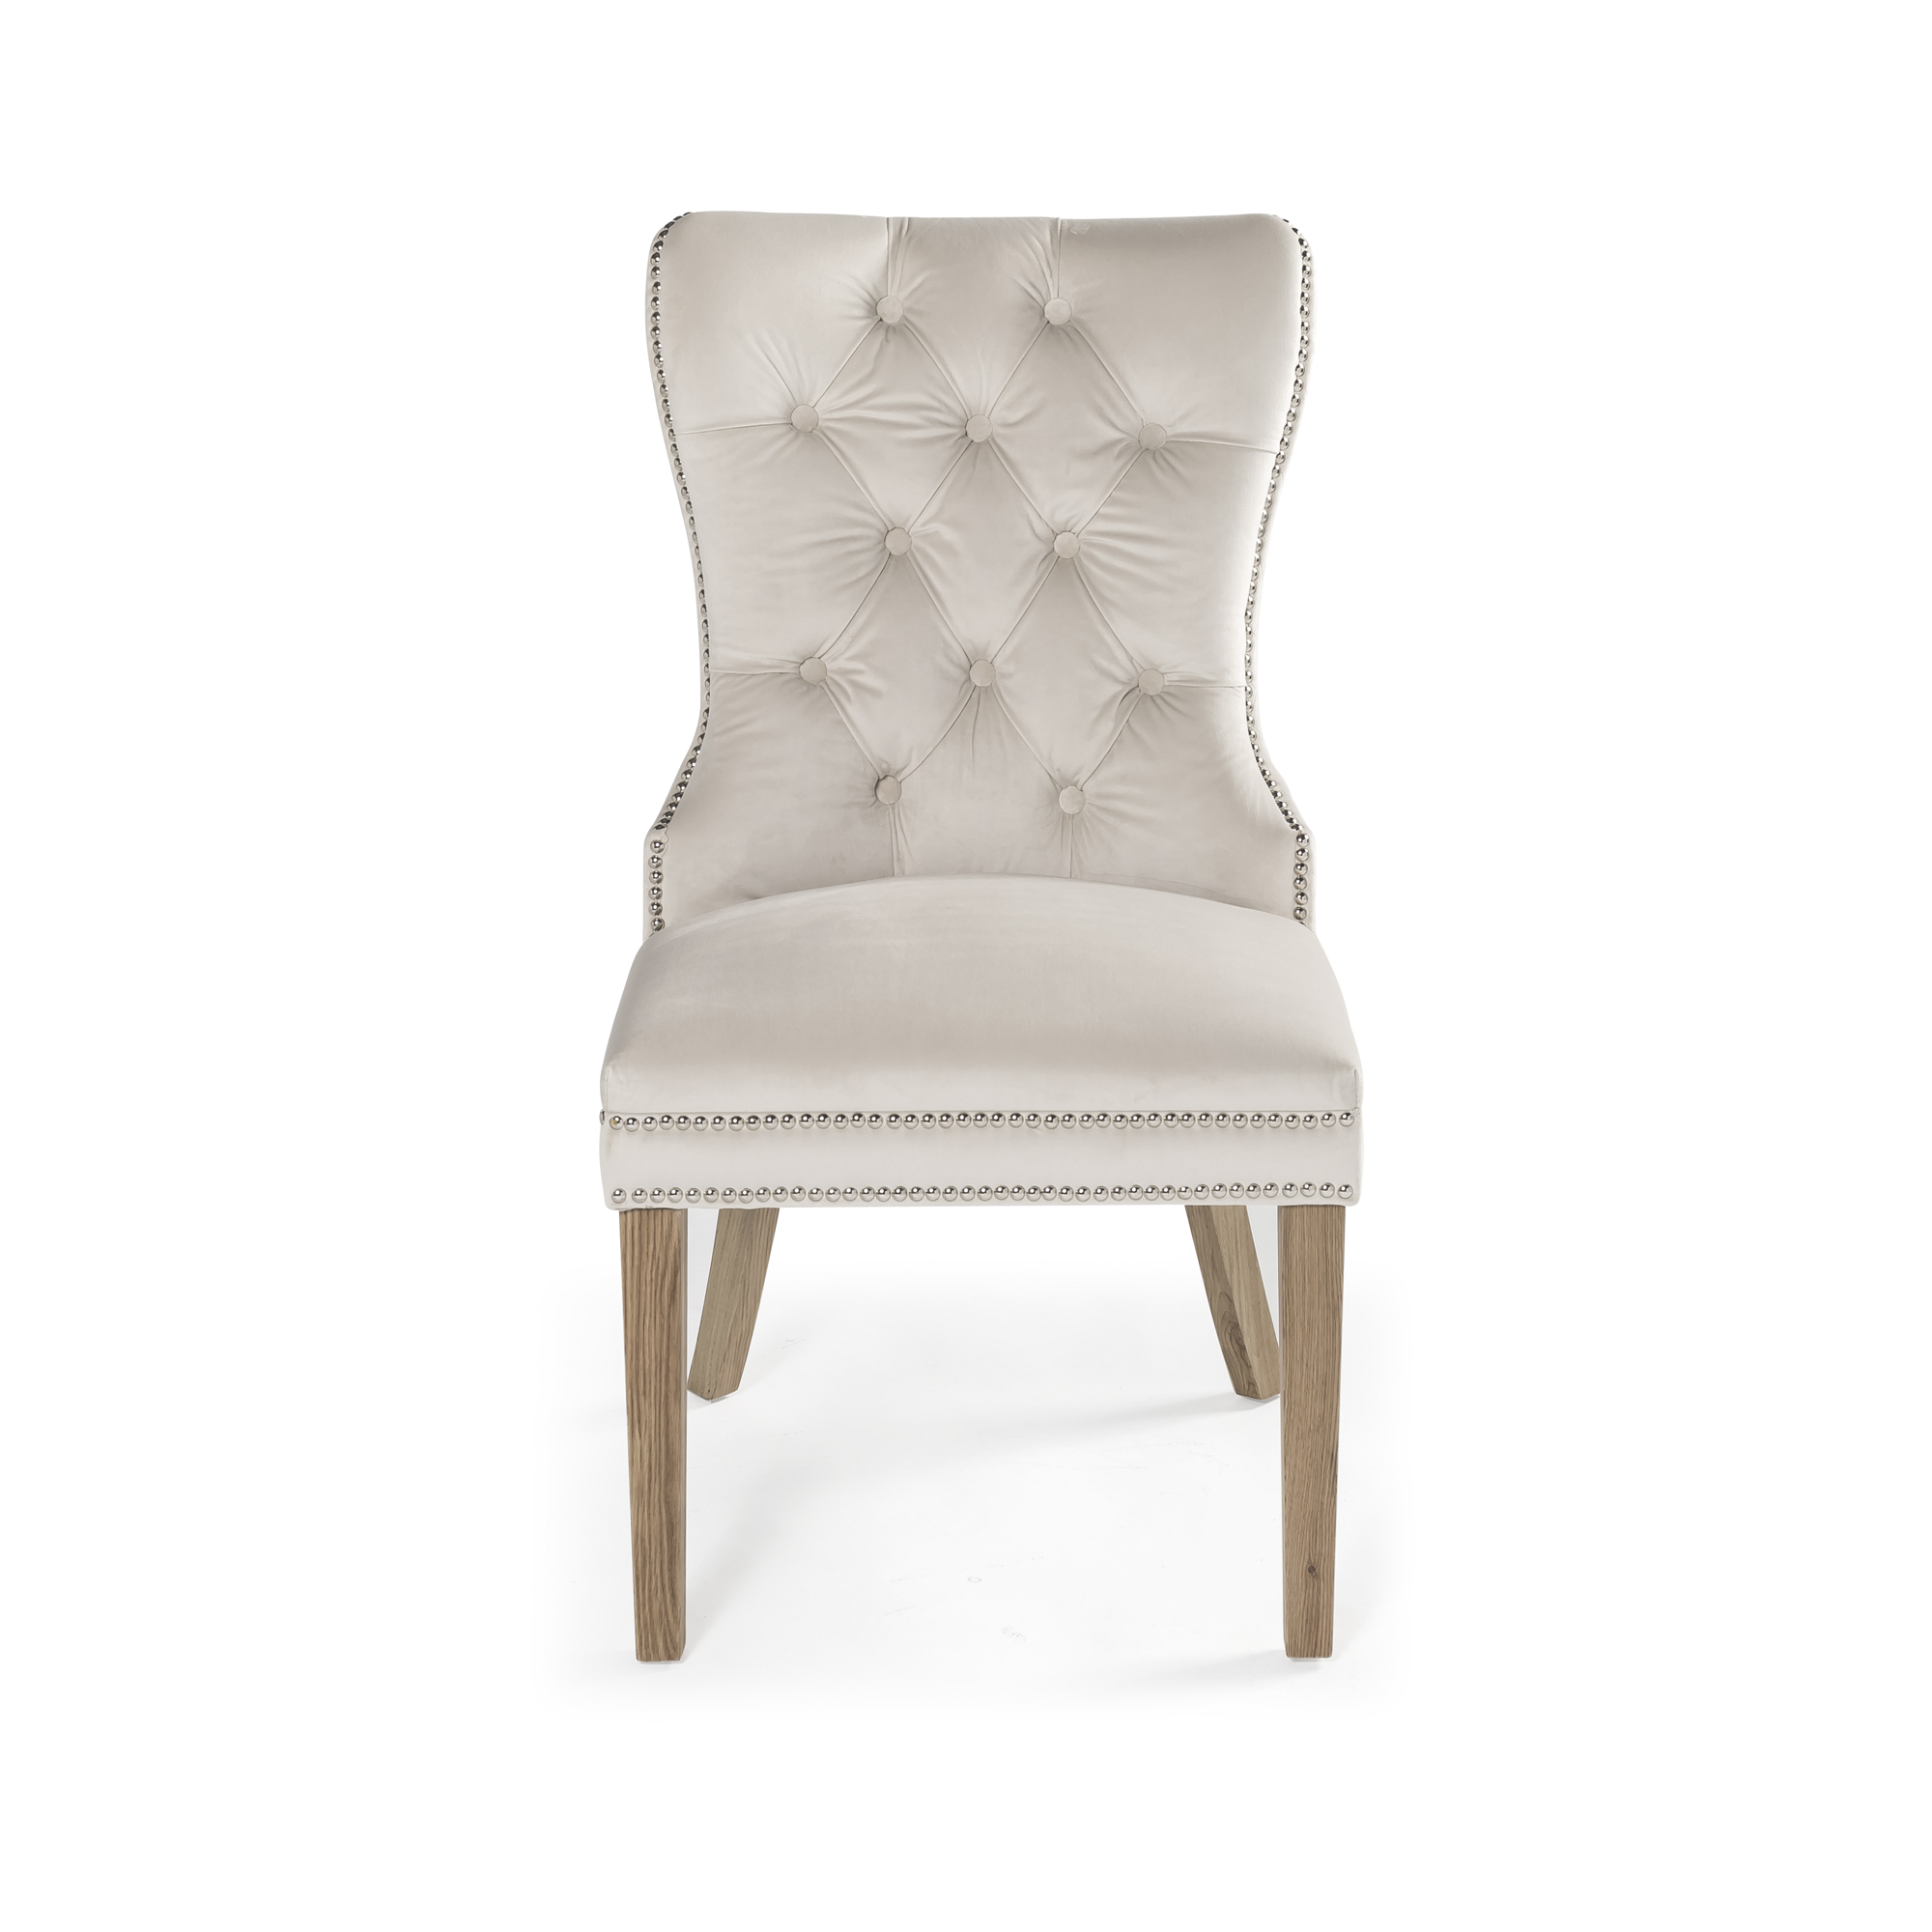 Hale Studded Cream Velvet Dining Chair with Solid Oak Legs